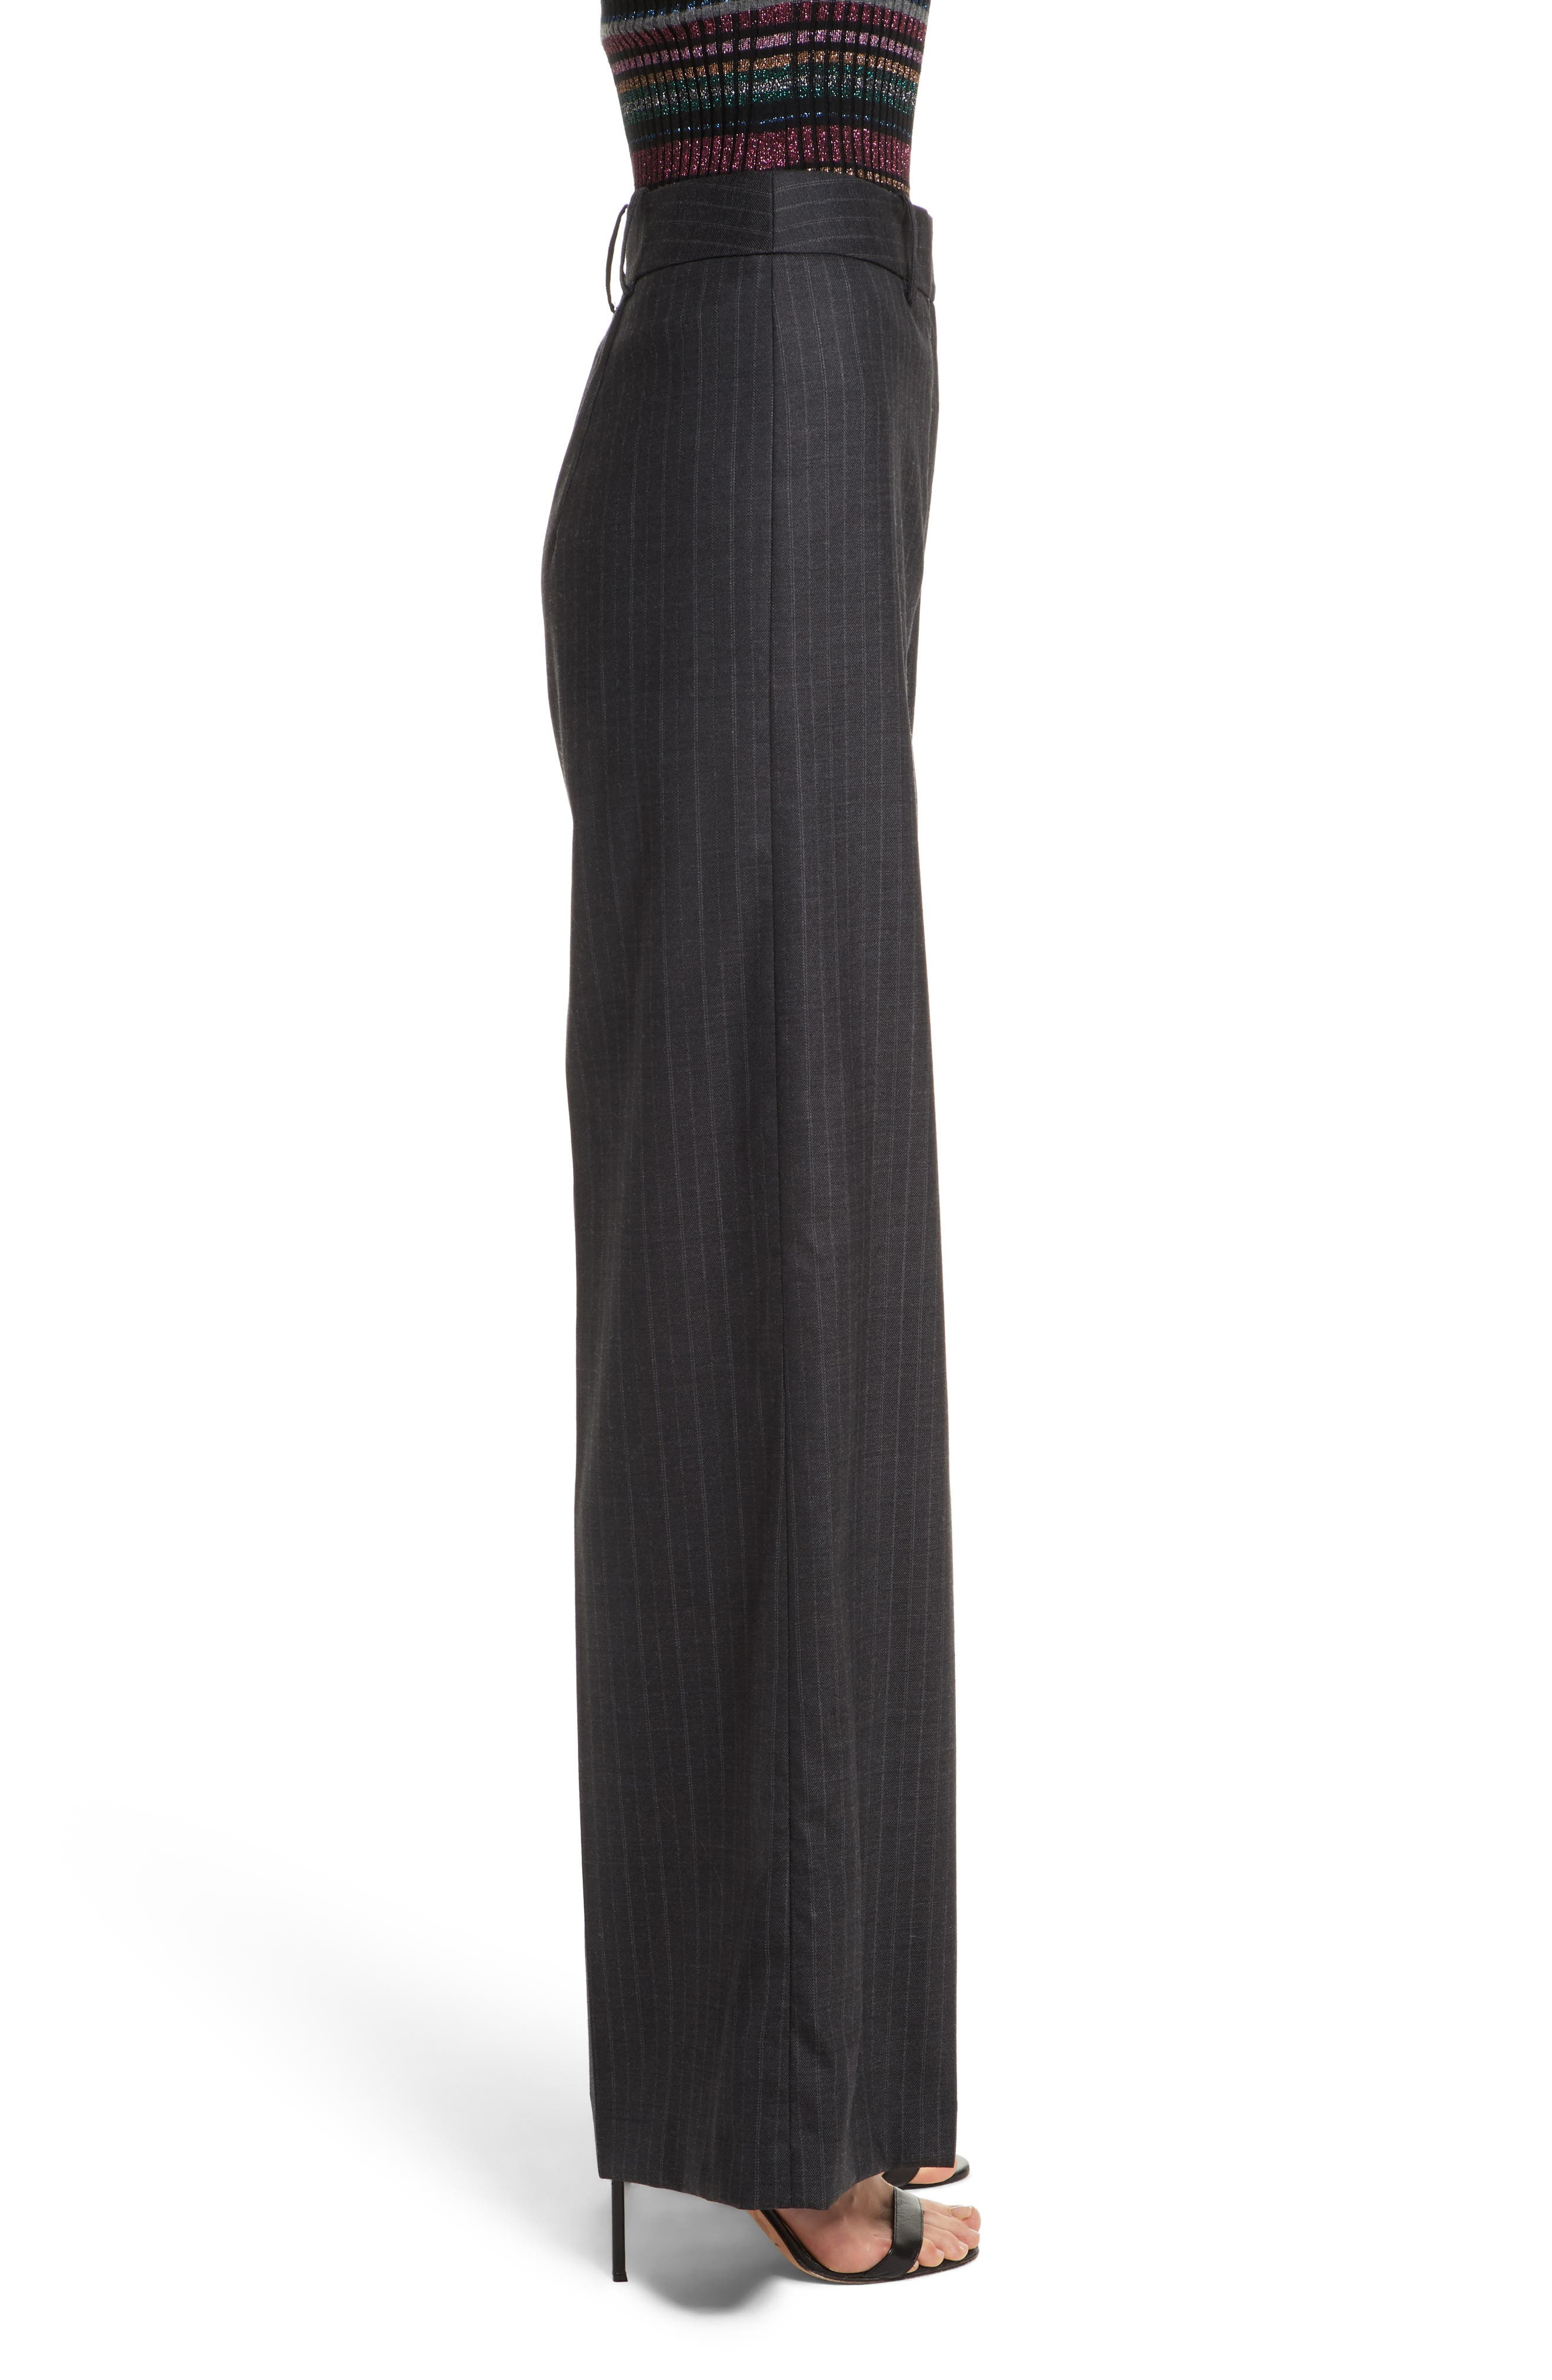 Sia Pinstripe Italian Stretch Wool Trousers,                             Alternate thumbnail 3, color,